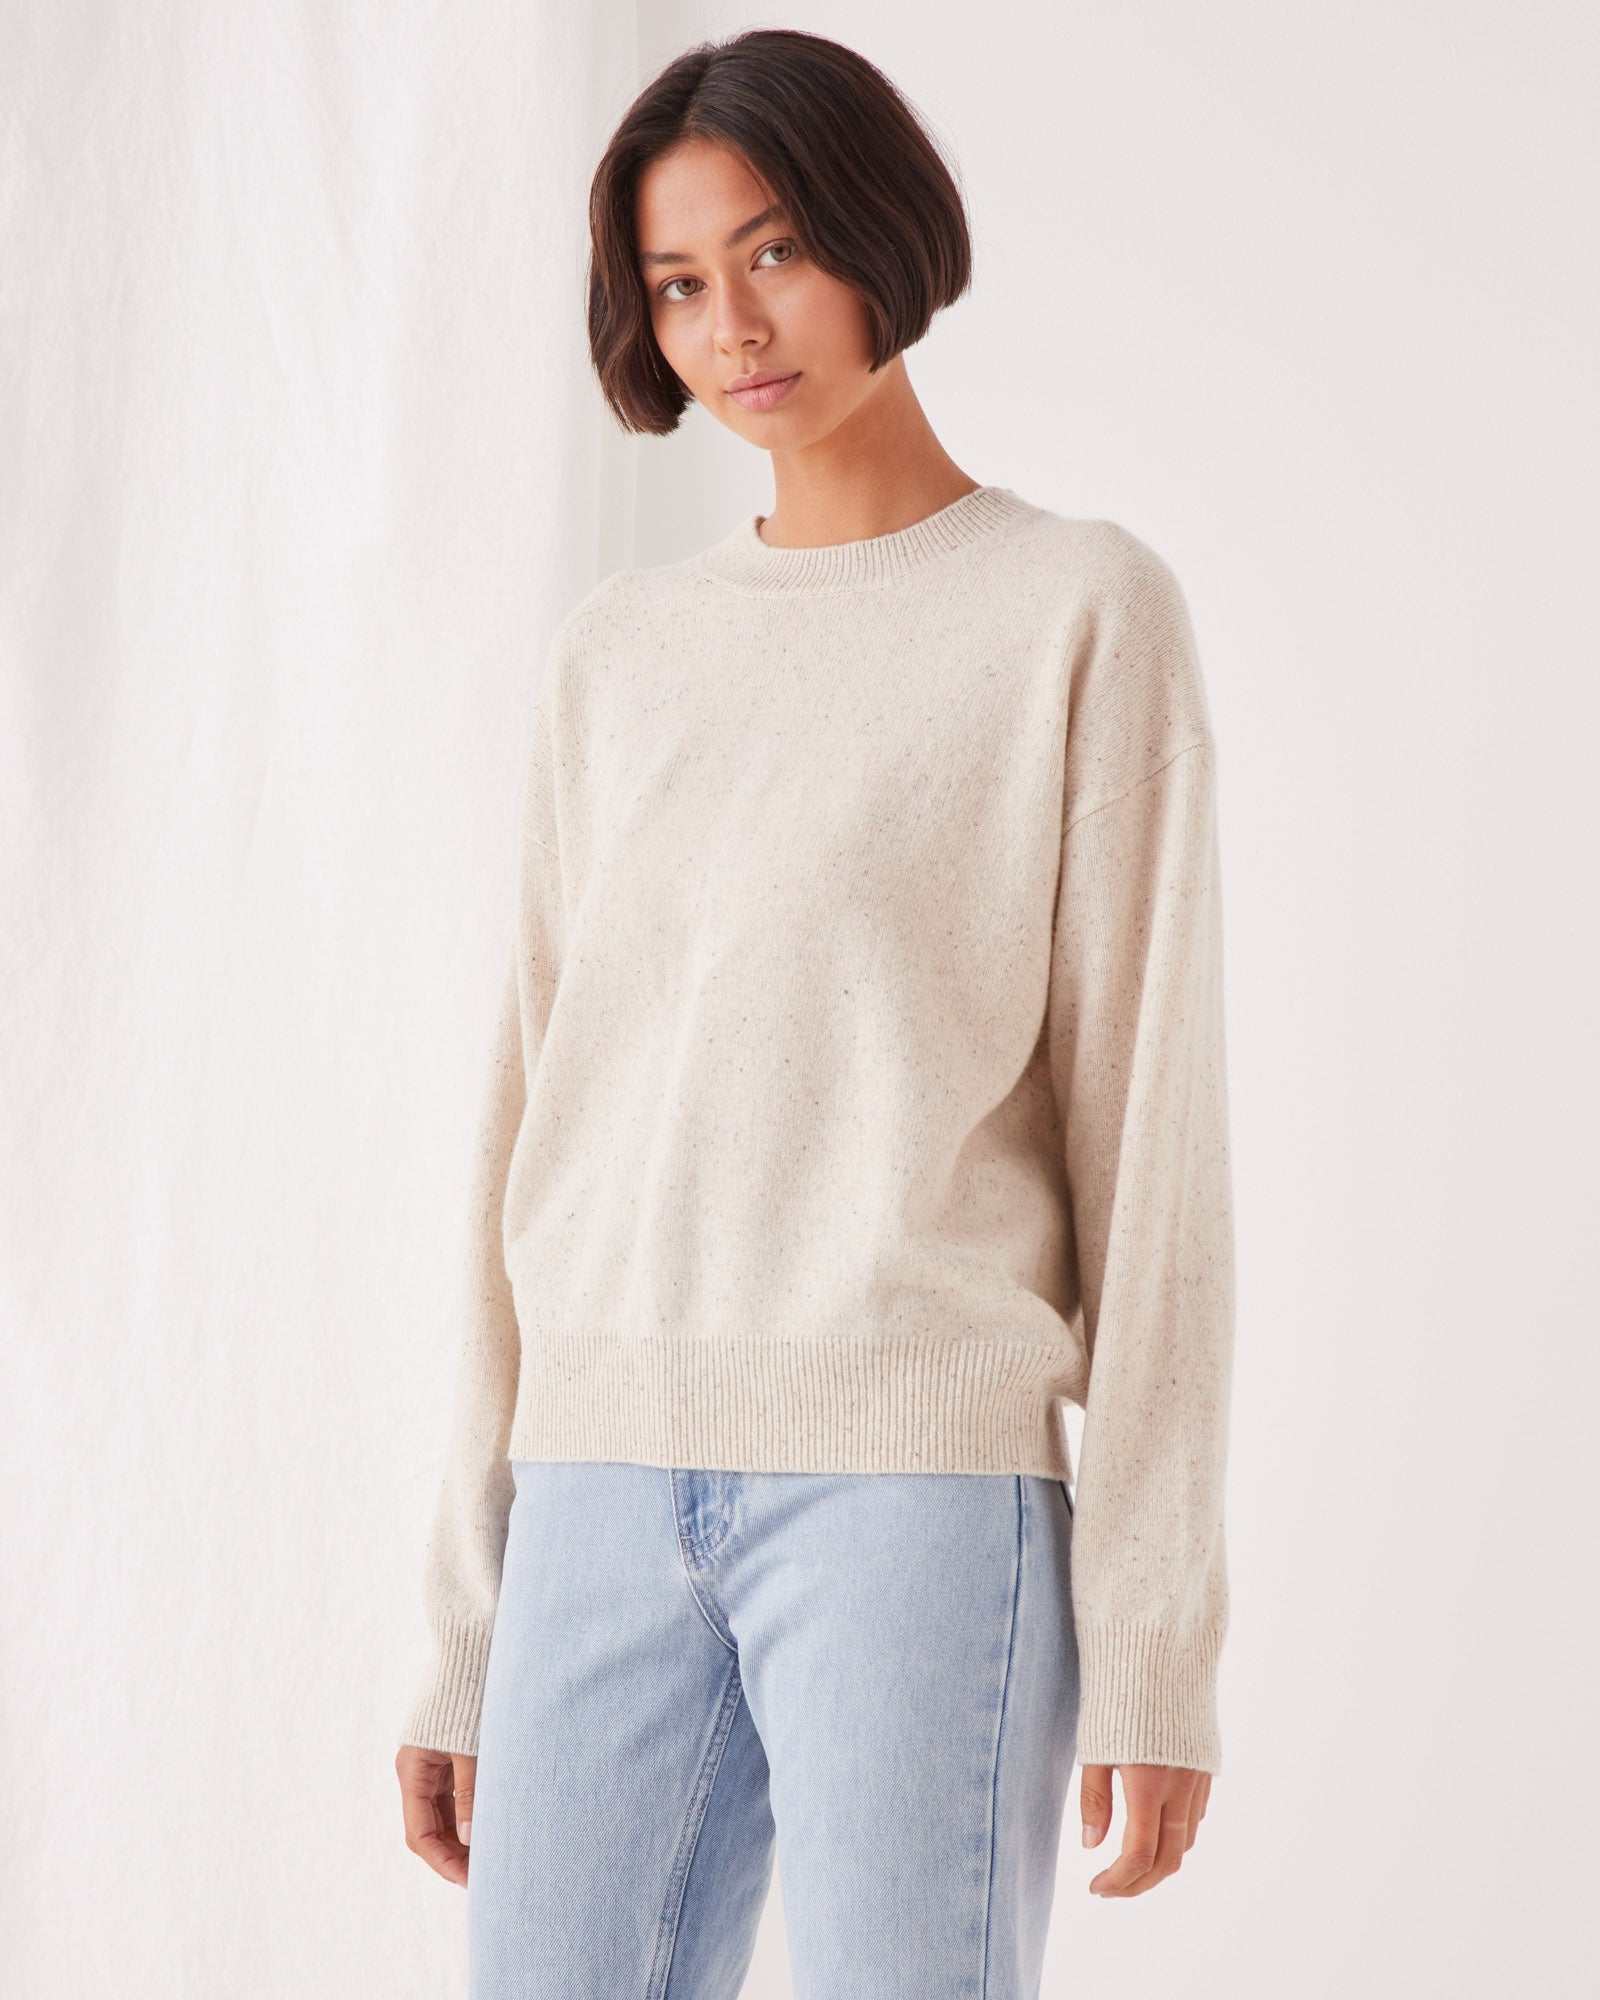 Iren Wool Knit